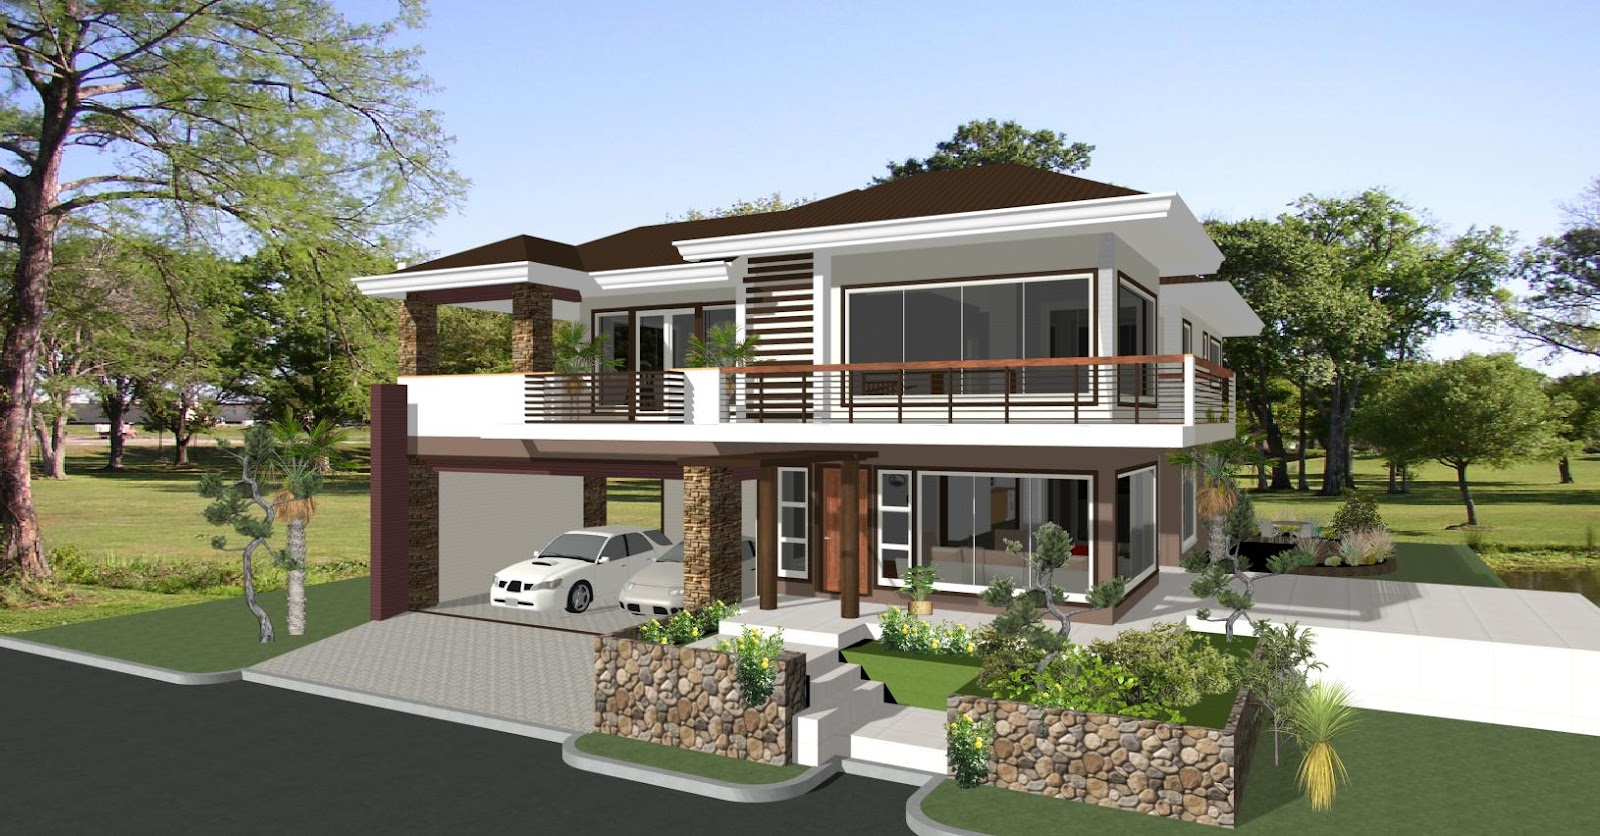 house designs iloilo home design philippines iloilo home designs home design architectural rendering civil